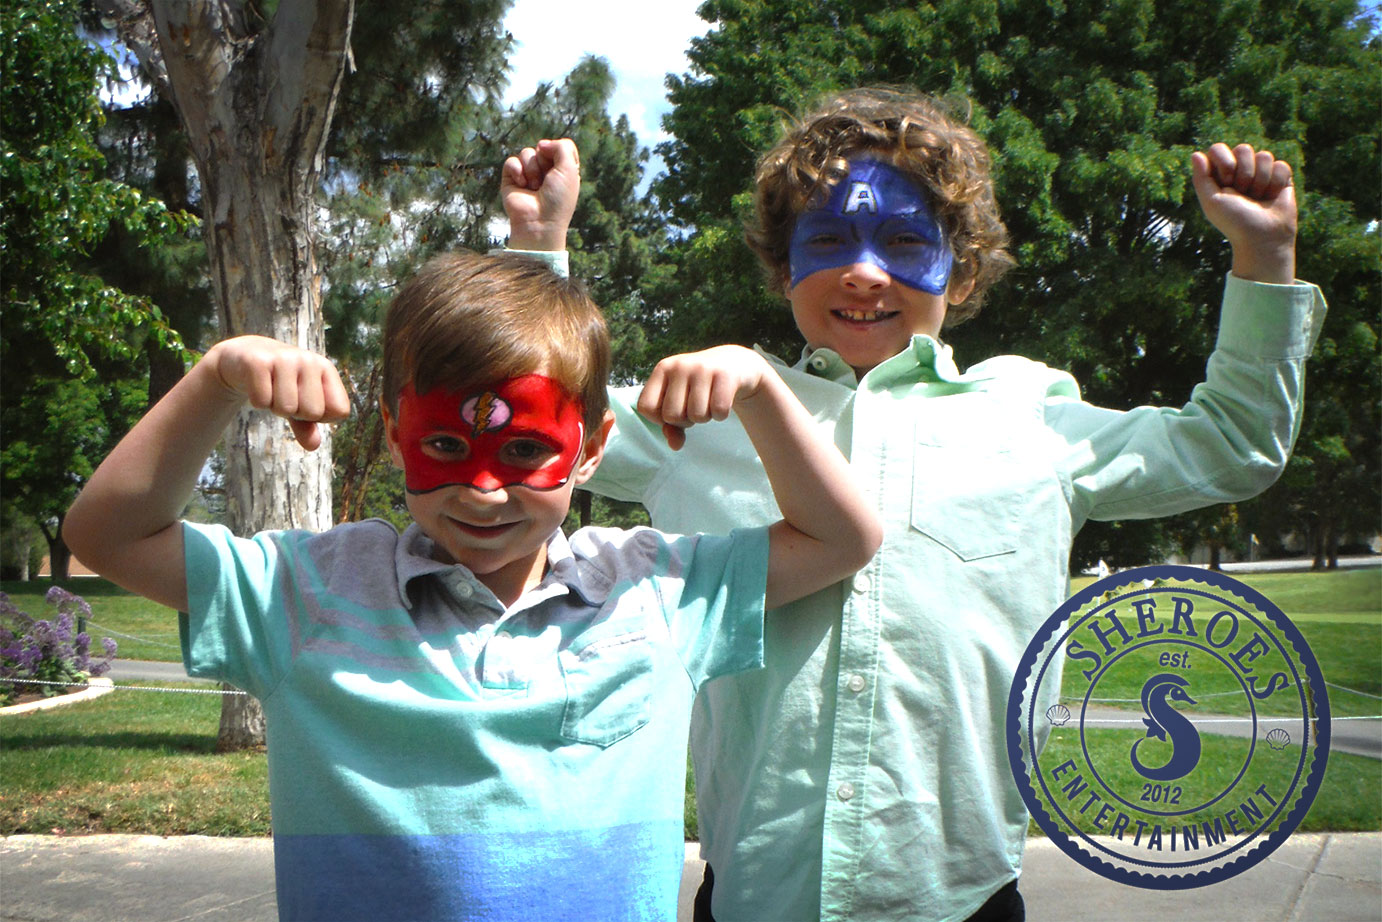 Super hero face paint designs make every kid feel like a champion!